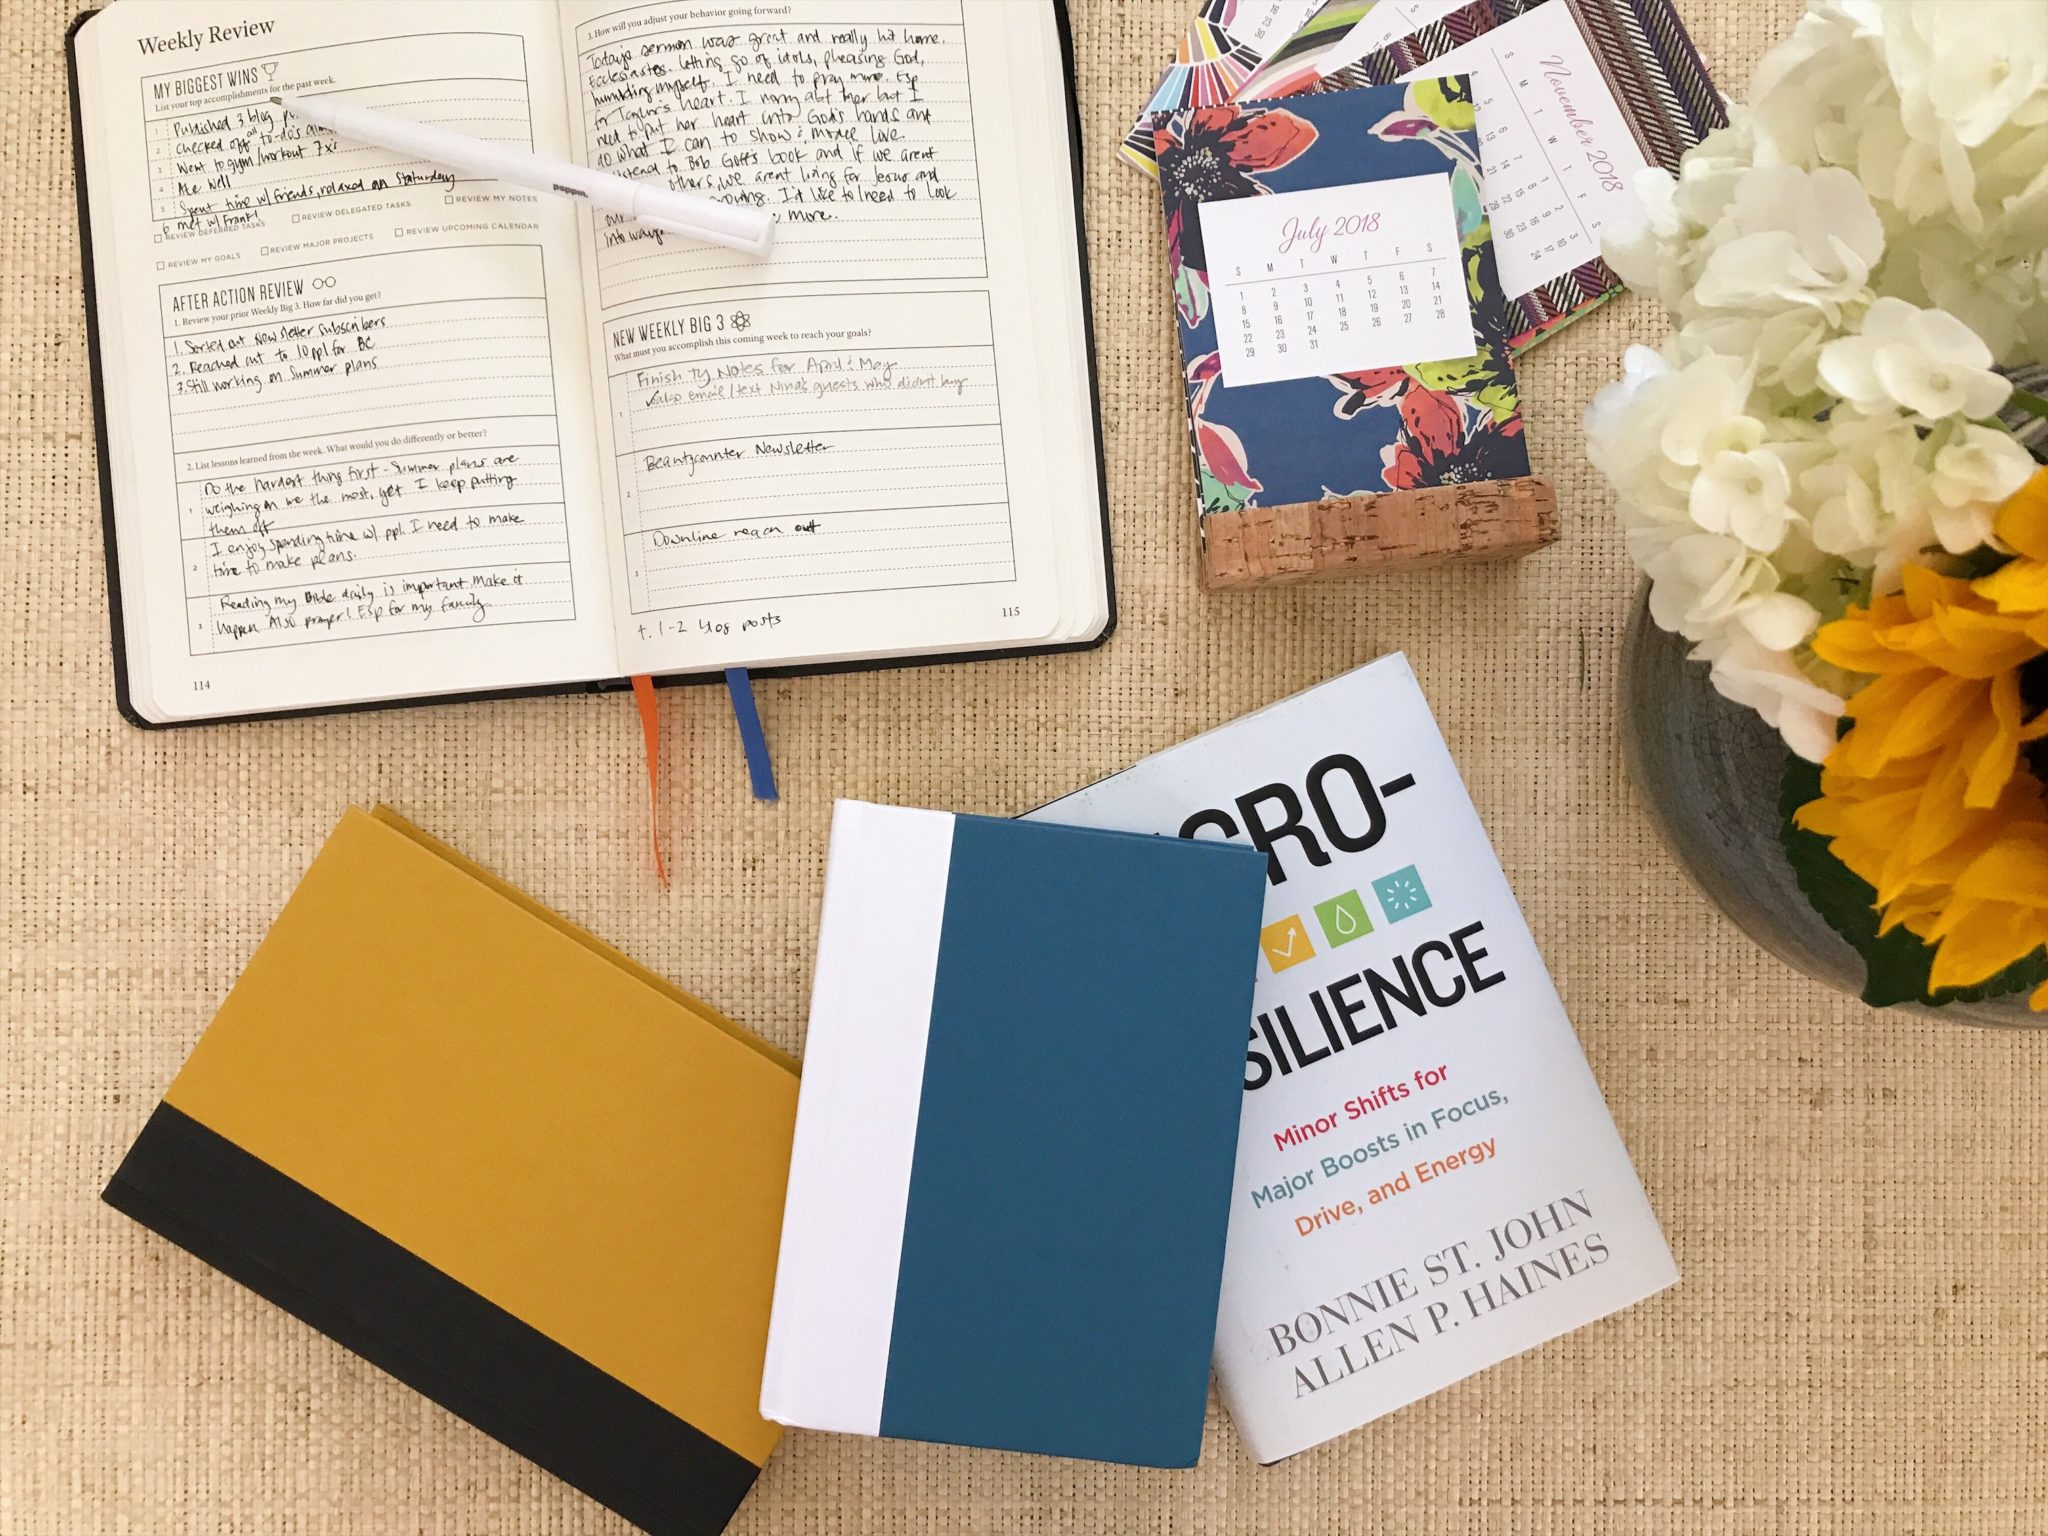 books scattered on a table with a calendar and a flower arrangement